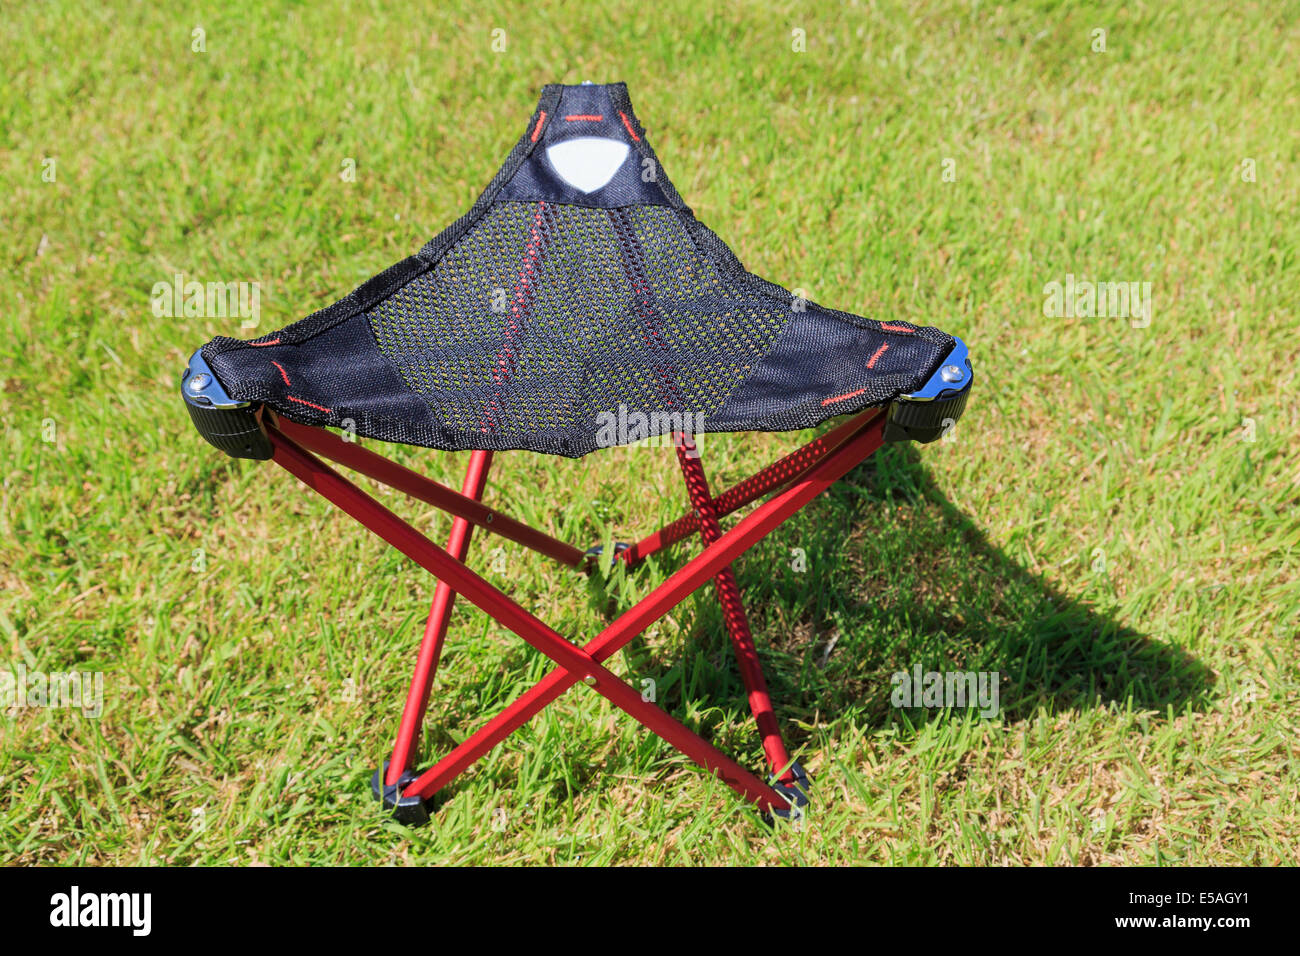 Folding portable three-legged tripod camping stool with a triangular mesh seat on grass in sunshine - Stock Image